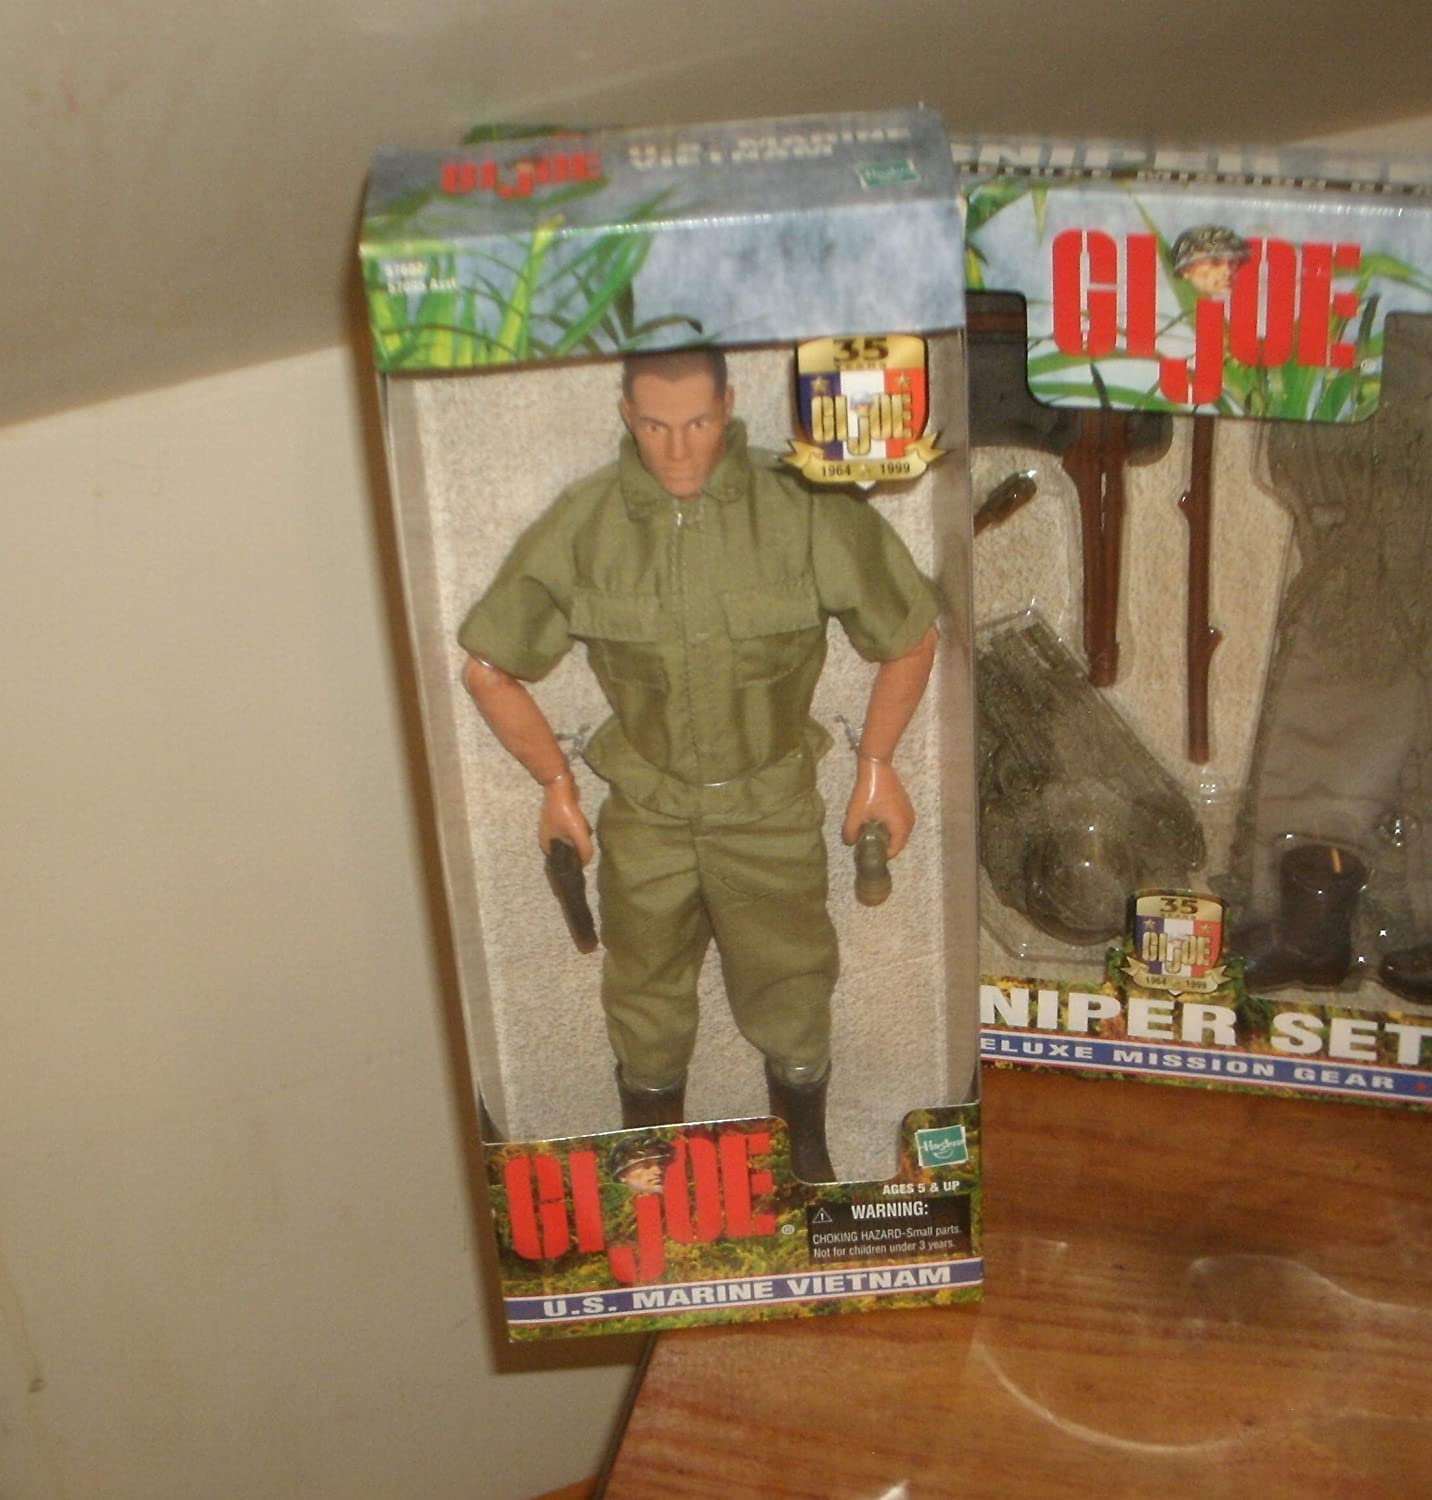 GI Joe 35 Years We OFFer at cheap prices U.S. Vietnam Figure Marine New products, world's highest quality popular! 12